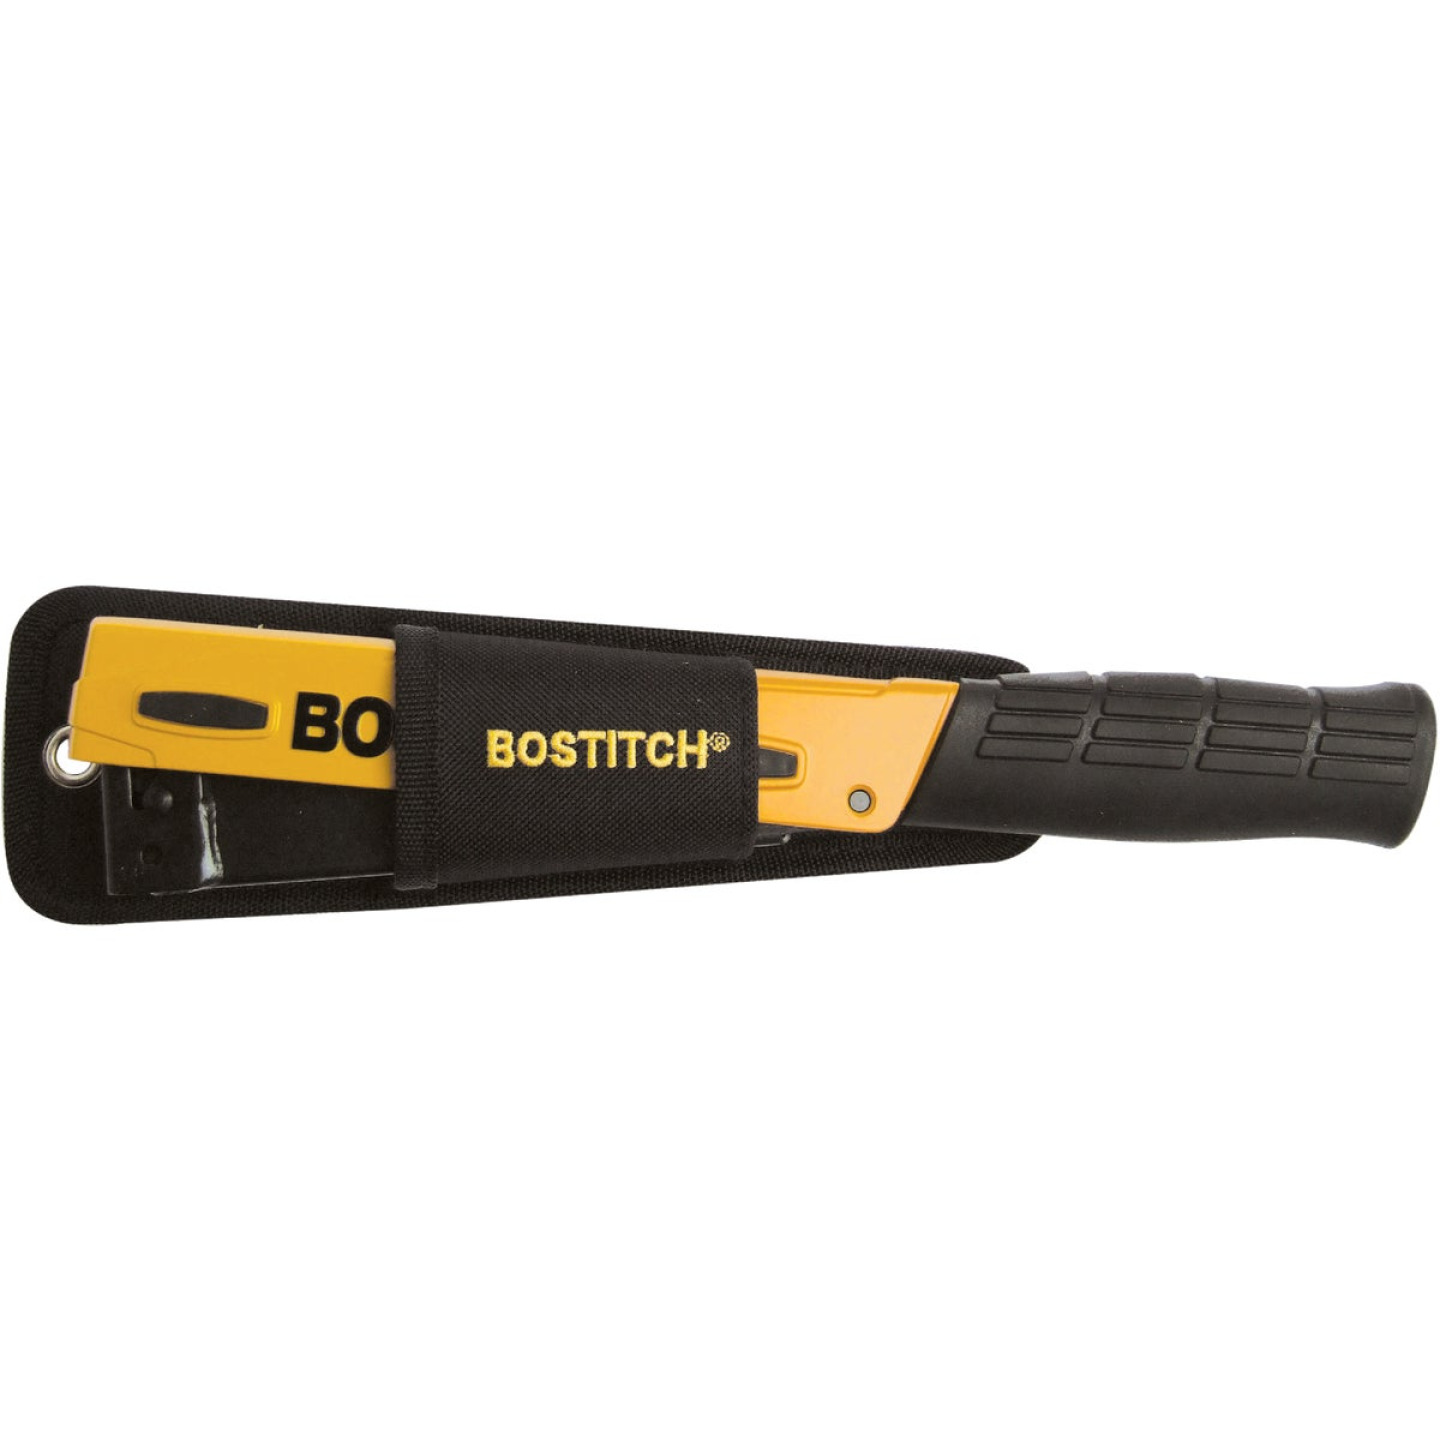 Bostitch PowerCrown Light-Duty Hammer Tacker with Holder Image 1